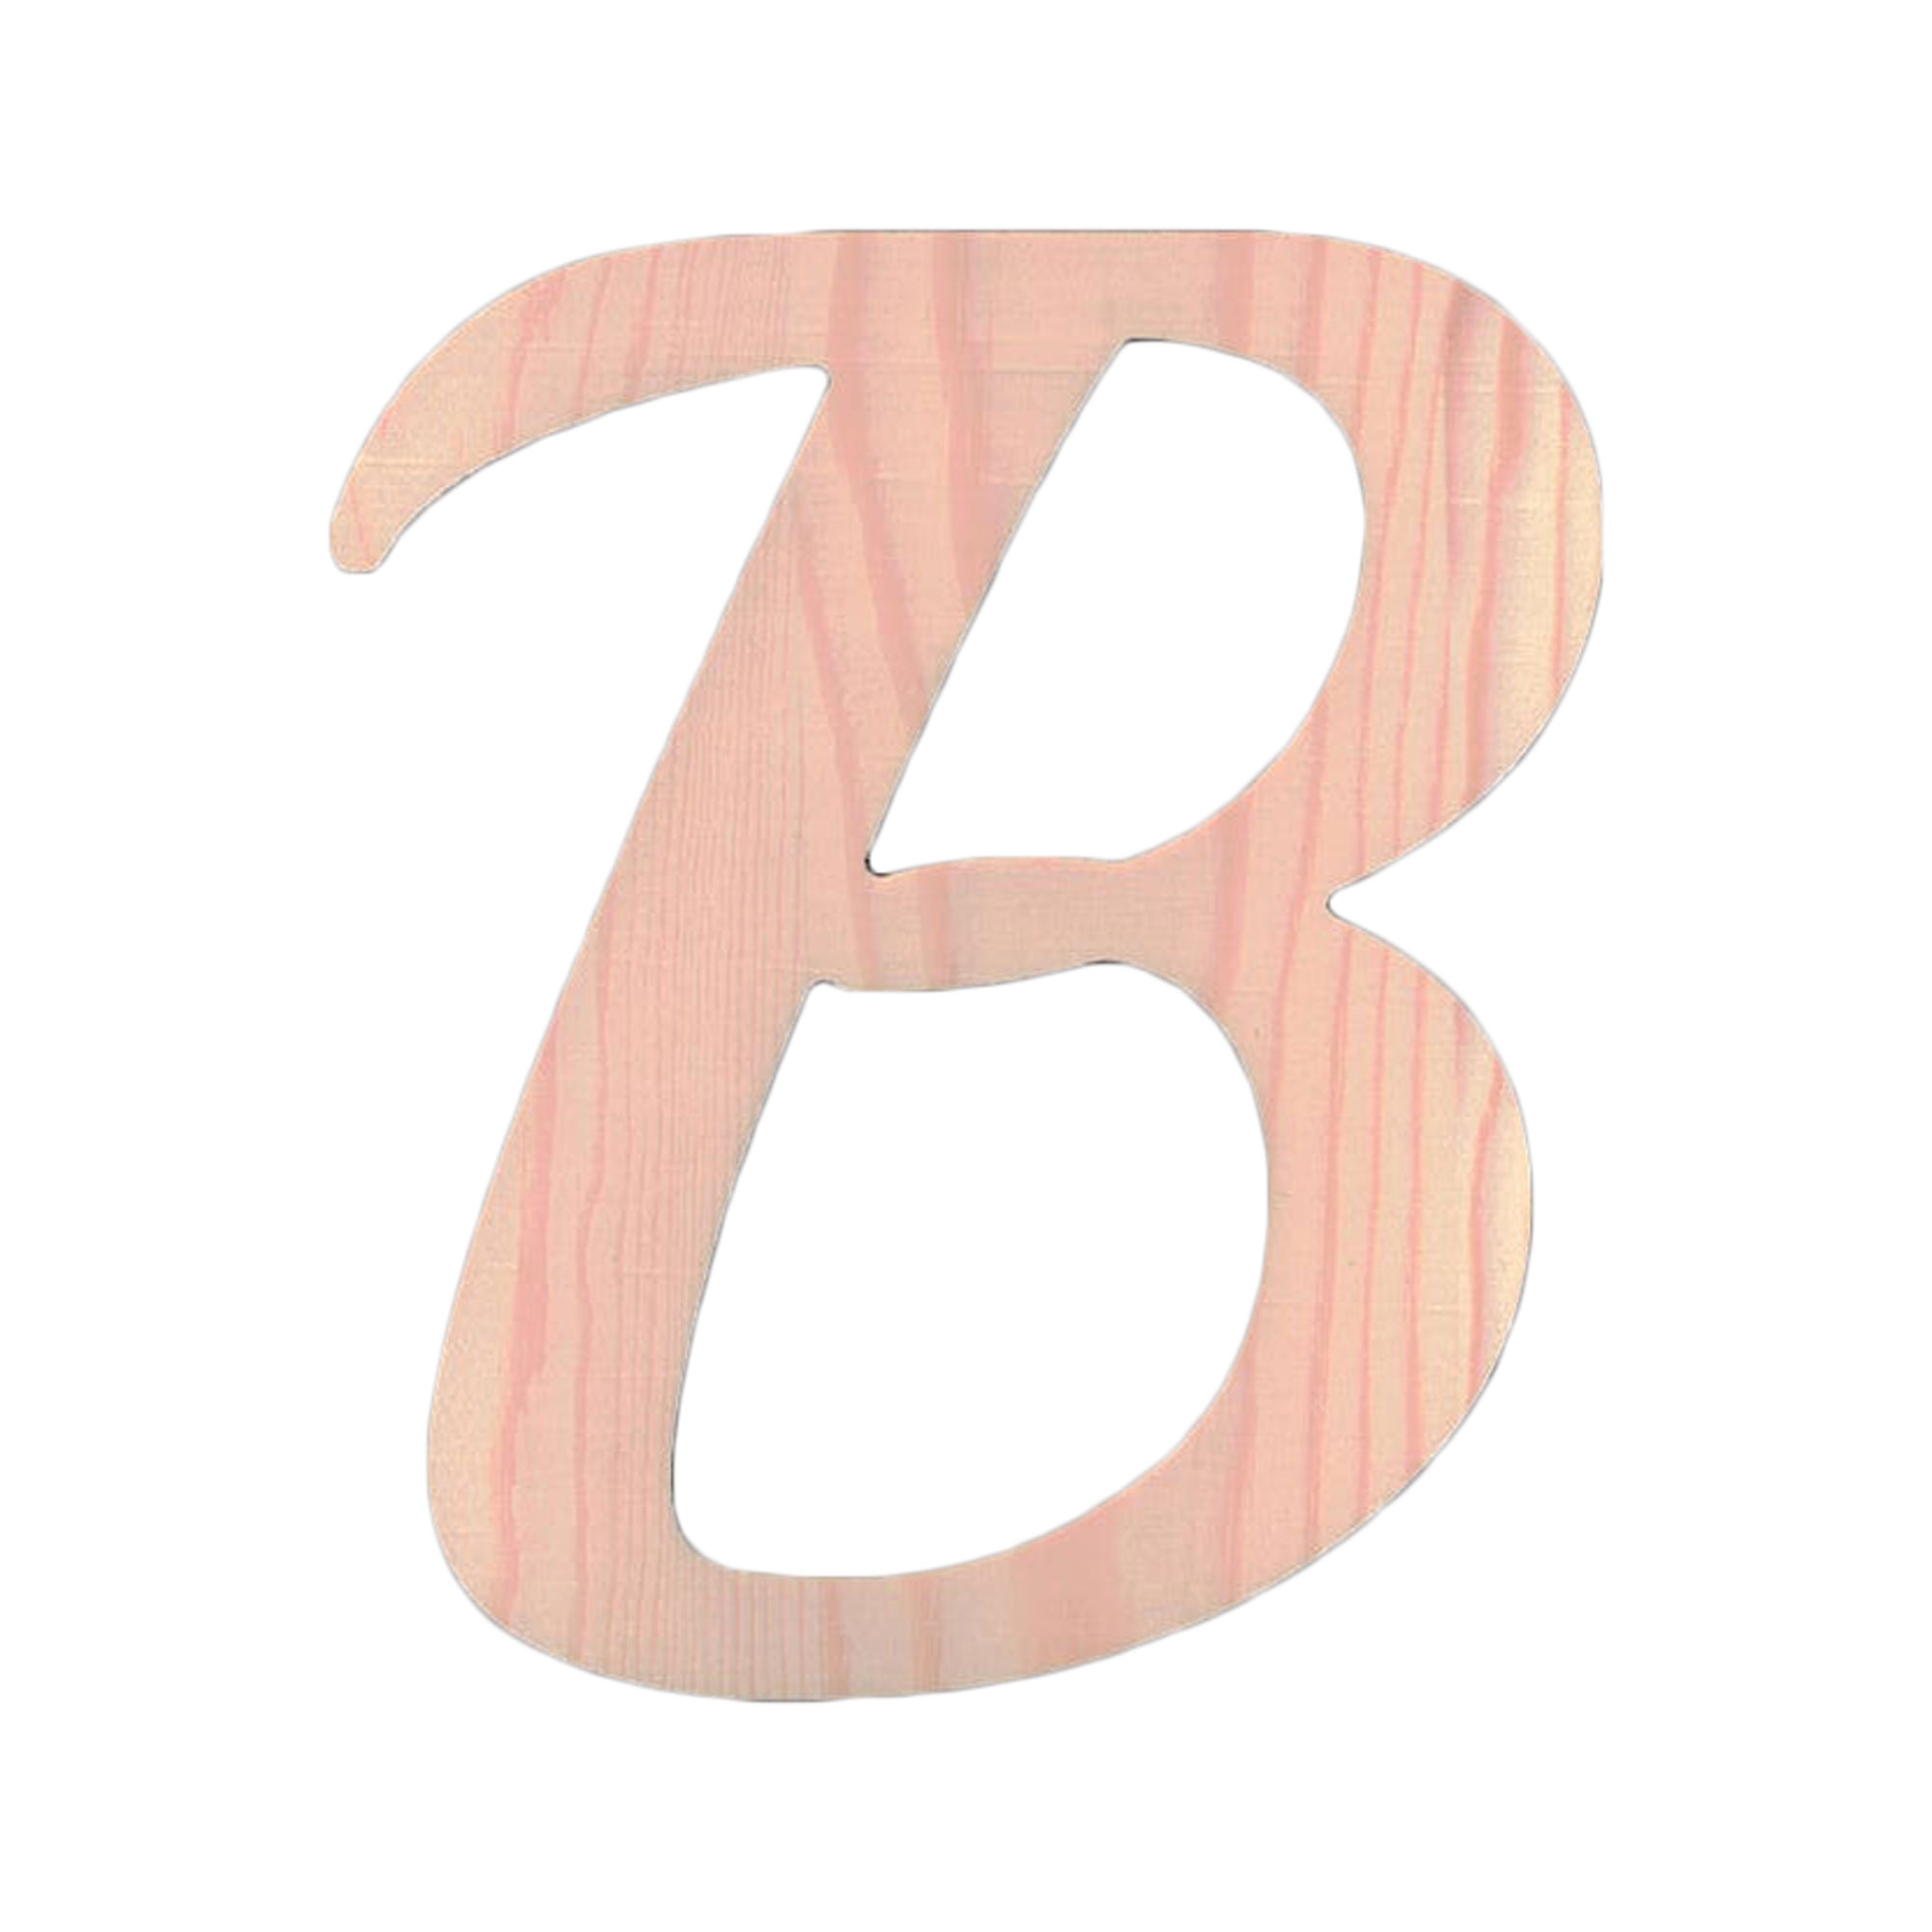 Unfinished Wooden Playball Italic Number 0 6.25 Inches